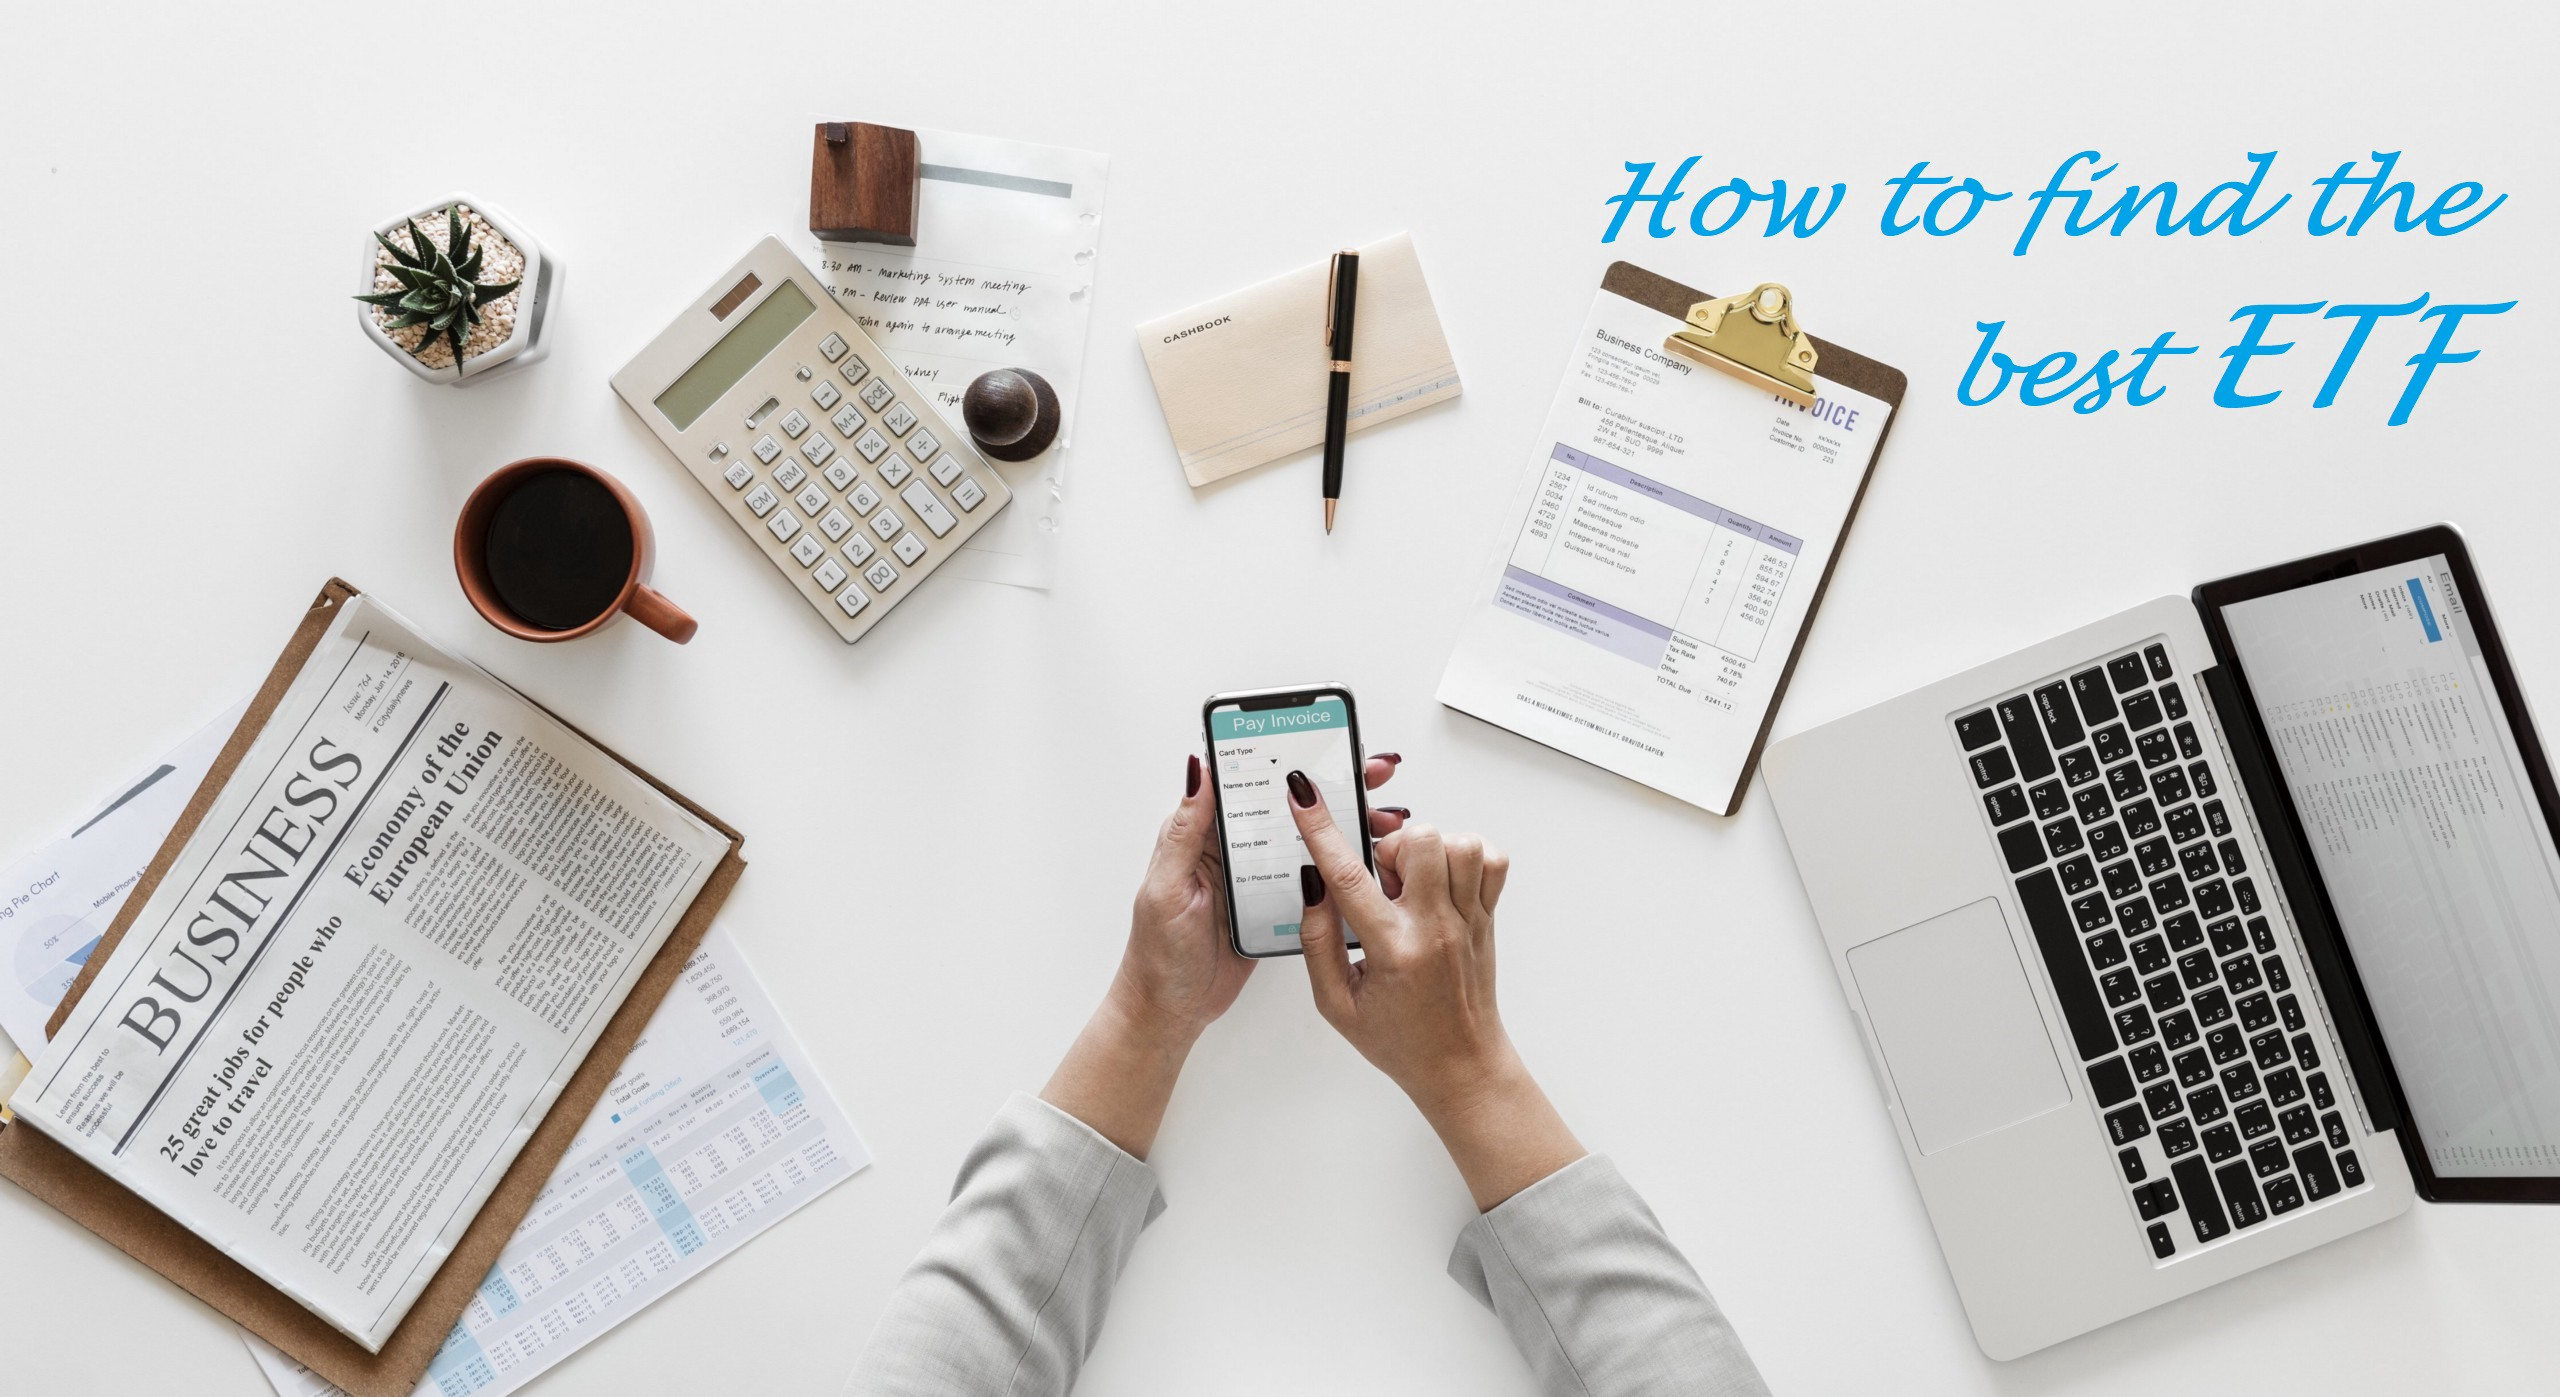 Guide on How to find the best ETF to invest in 2020